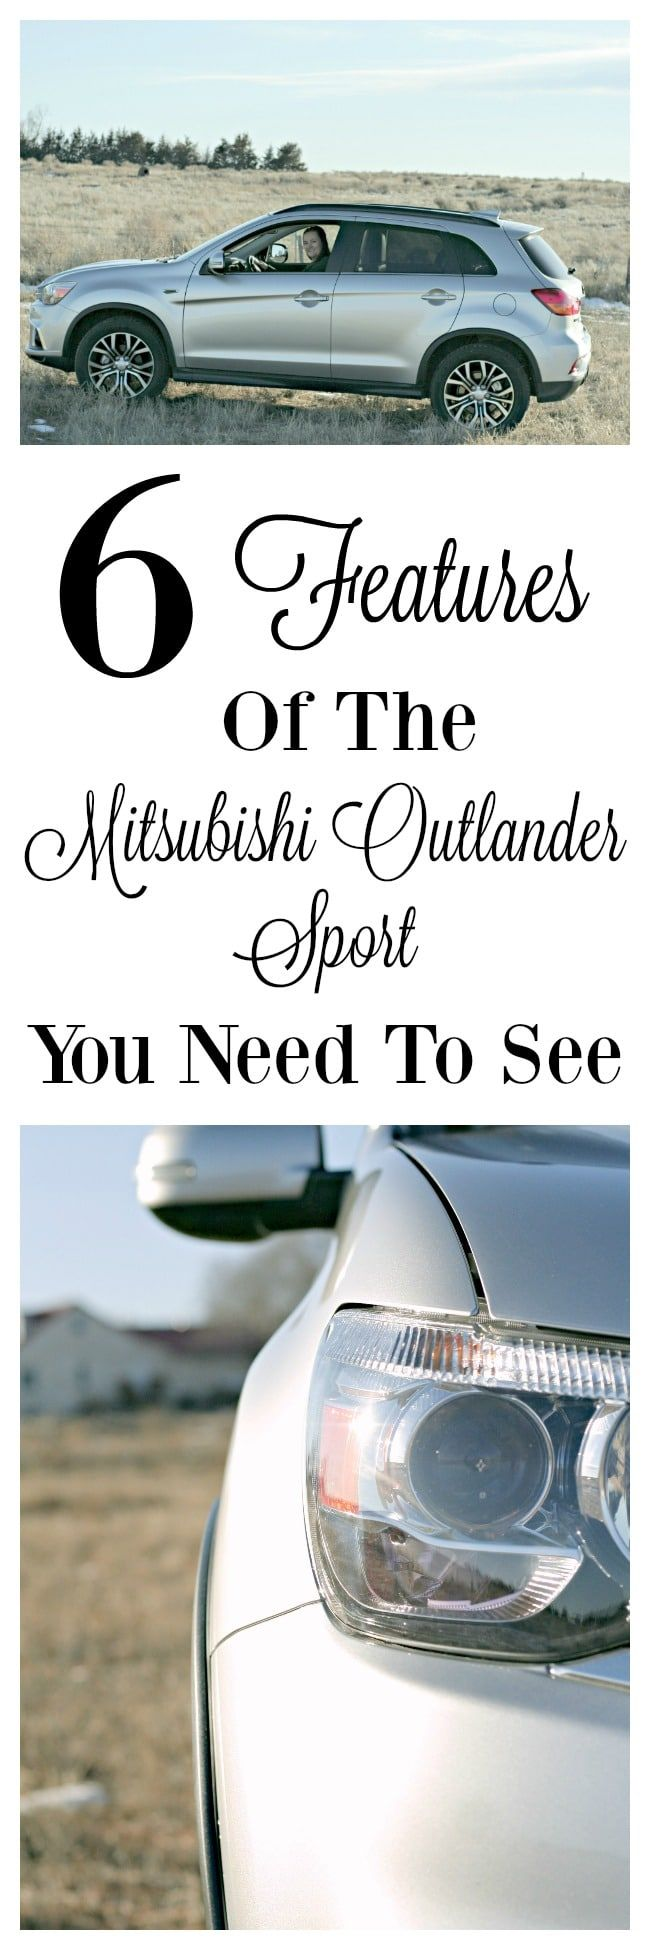 Features of Mitsubishi Outlander Sport, cool features of the Mitsubishi Outlander, Why should I purchase the Mitsubishi Outlander, Mitsubishi Outlander Sport Specs